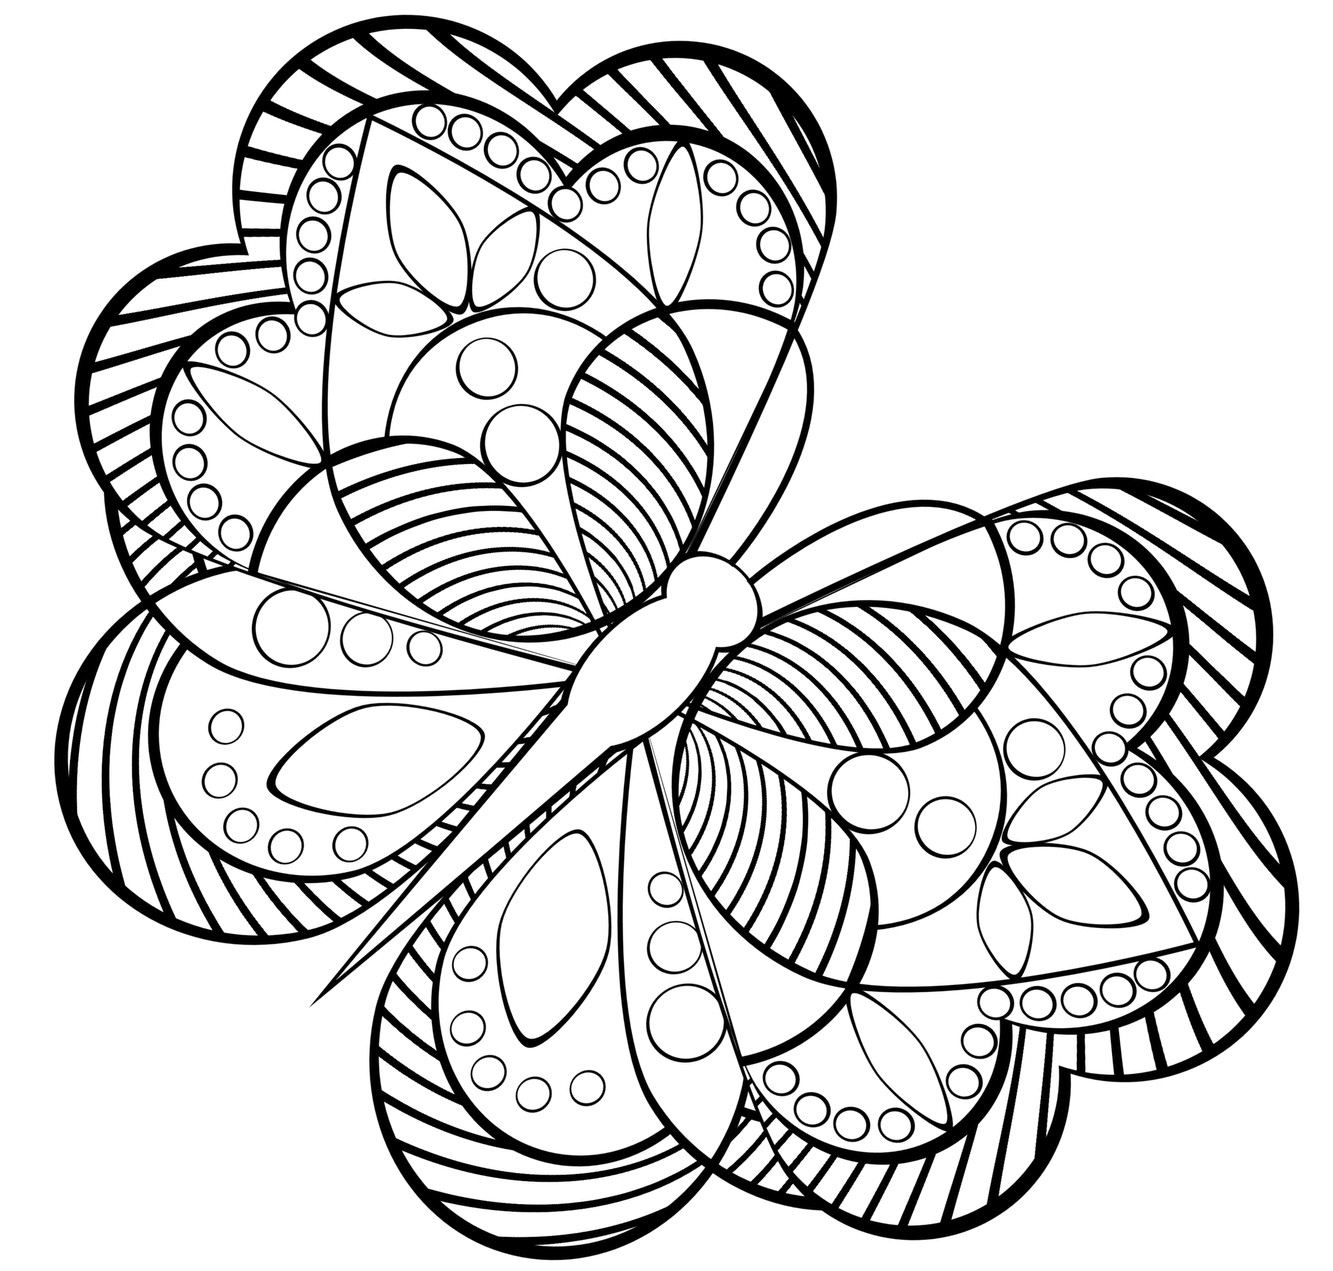 Best ideas about Adult Coloring Books . Save or Pin Free Coloring Pages For Adults To Print Special Image 12 Now.